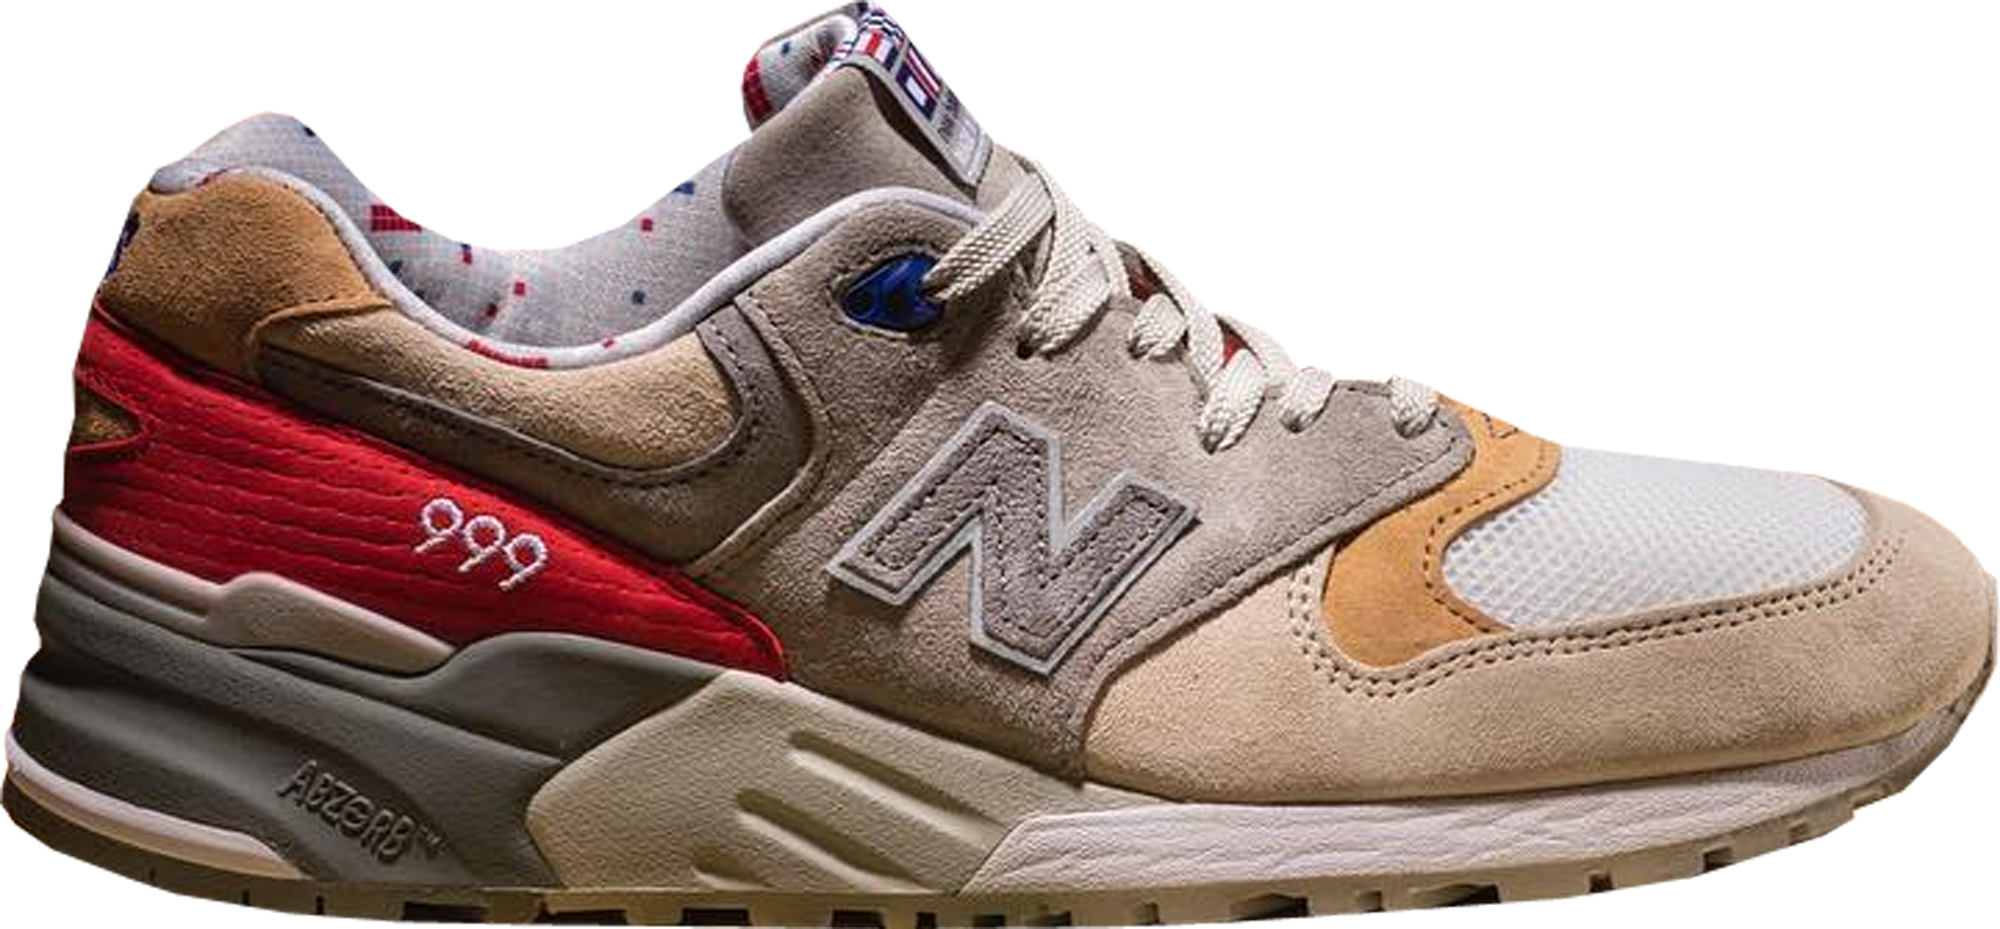 Concepts x New Balance 999 Hyannis Red